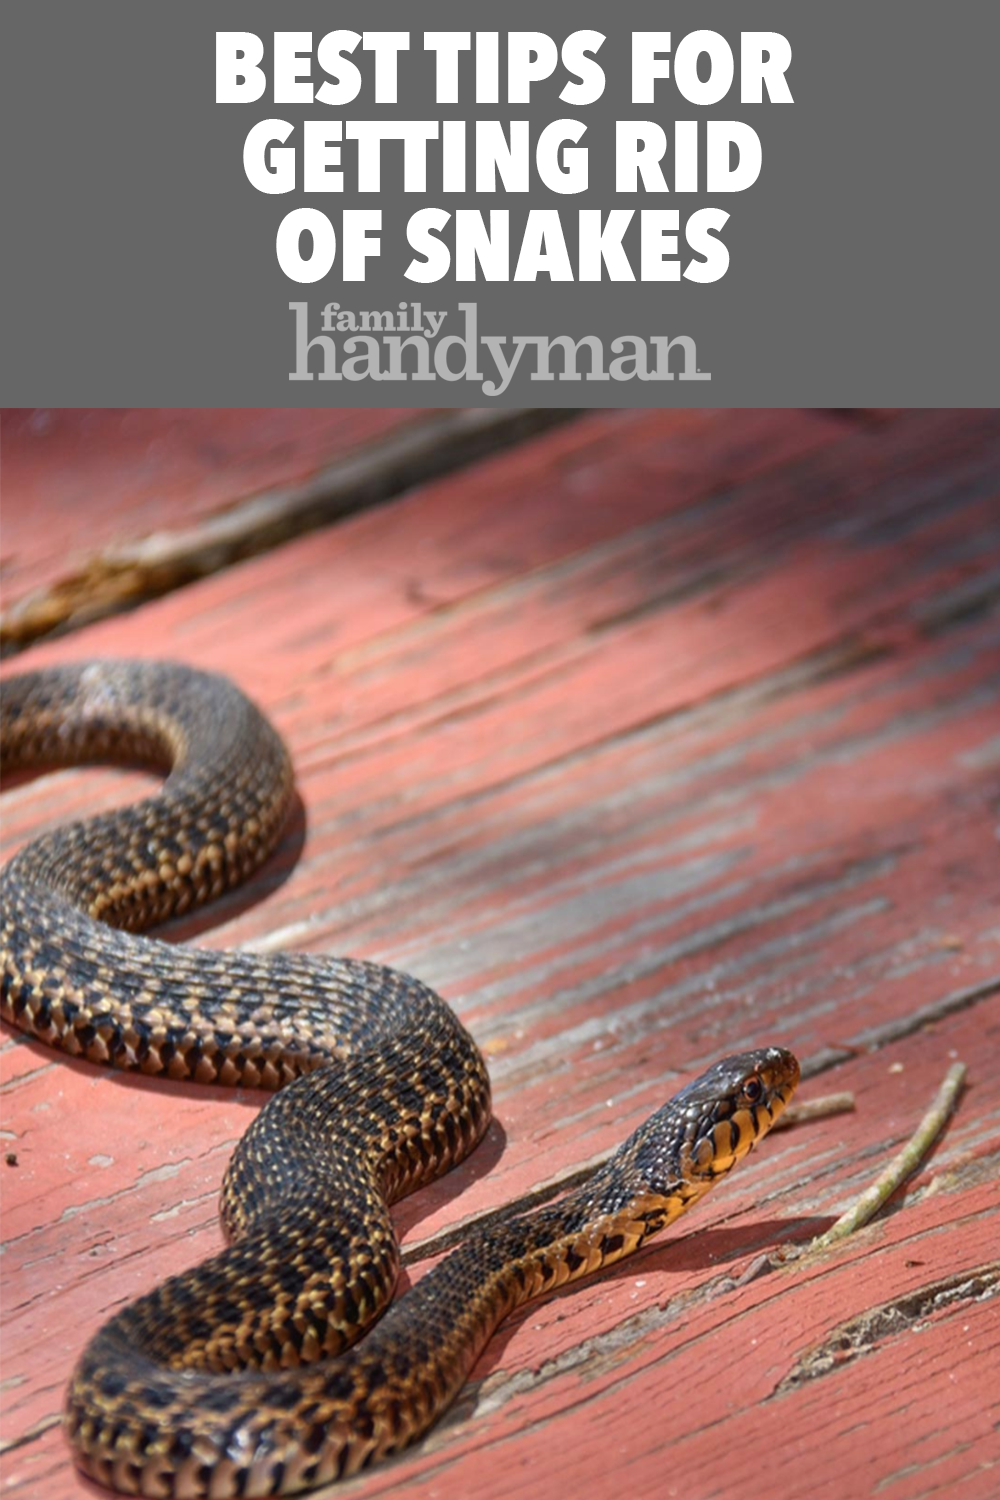 Unbelieveable Number Of Copperhead Snakes Removed From Va Home Richmond Charlottesville Virginia Virginia Professiona Baby Snakes Snake Poisonous Snakes